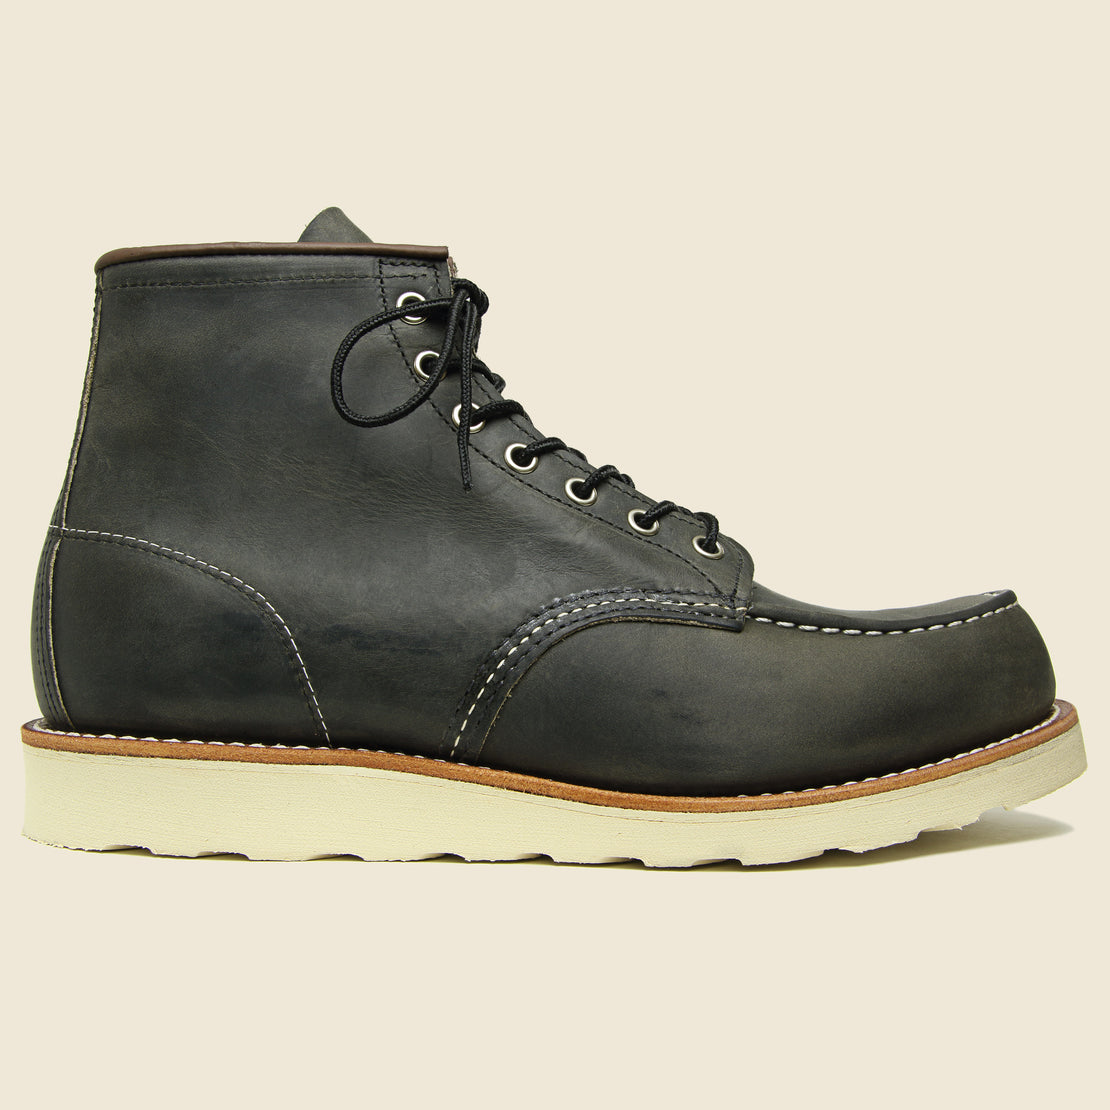 "Red Wing 6"" Moc Toe No. 8890- Charcoal Rough & Tough"